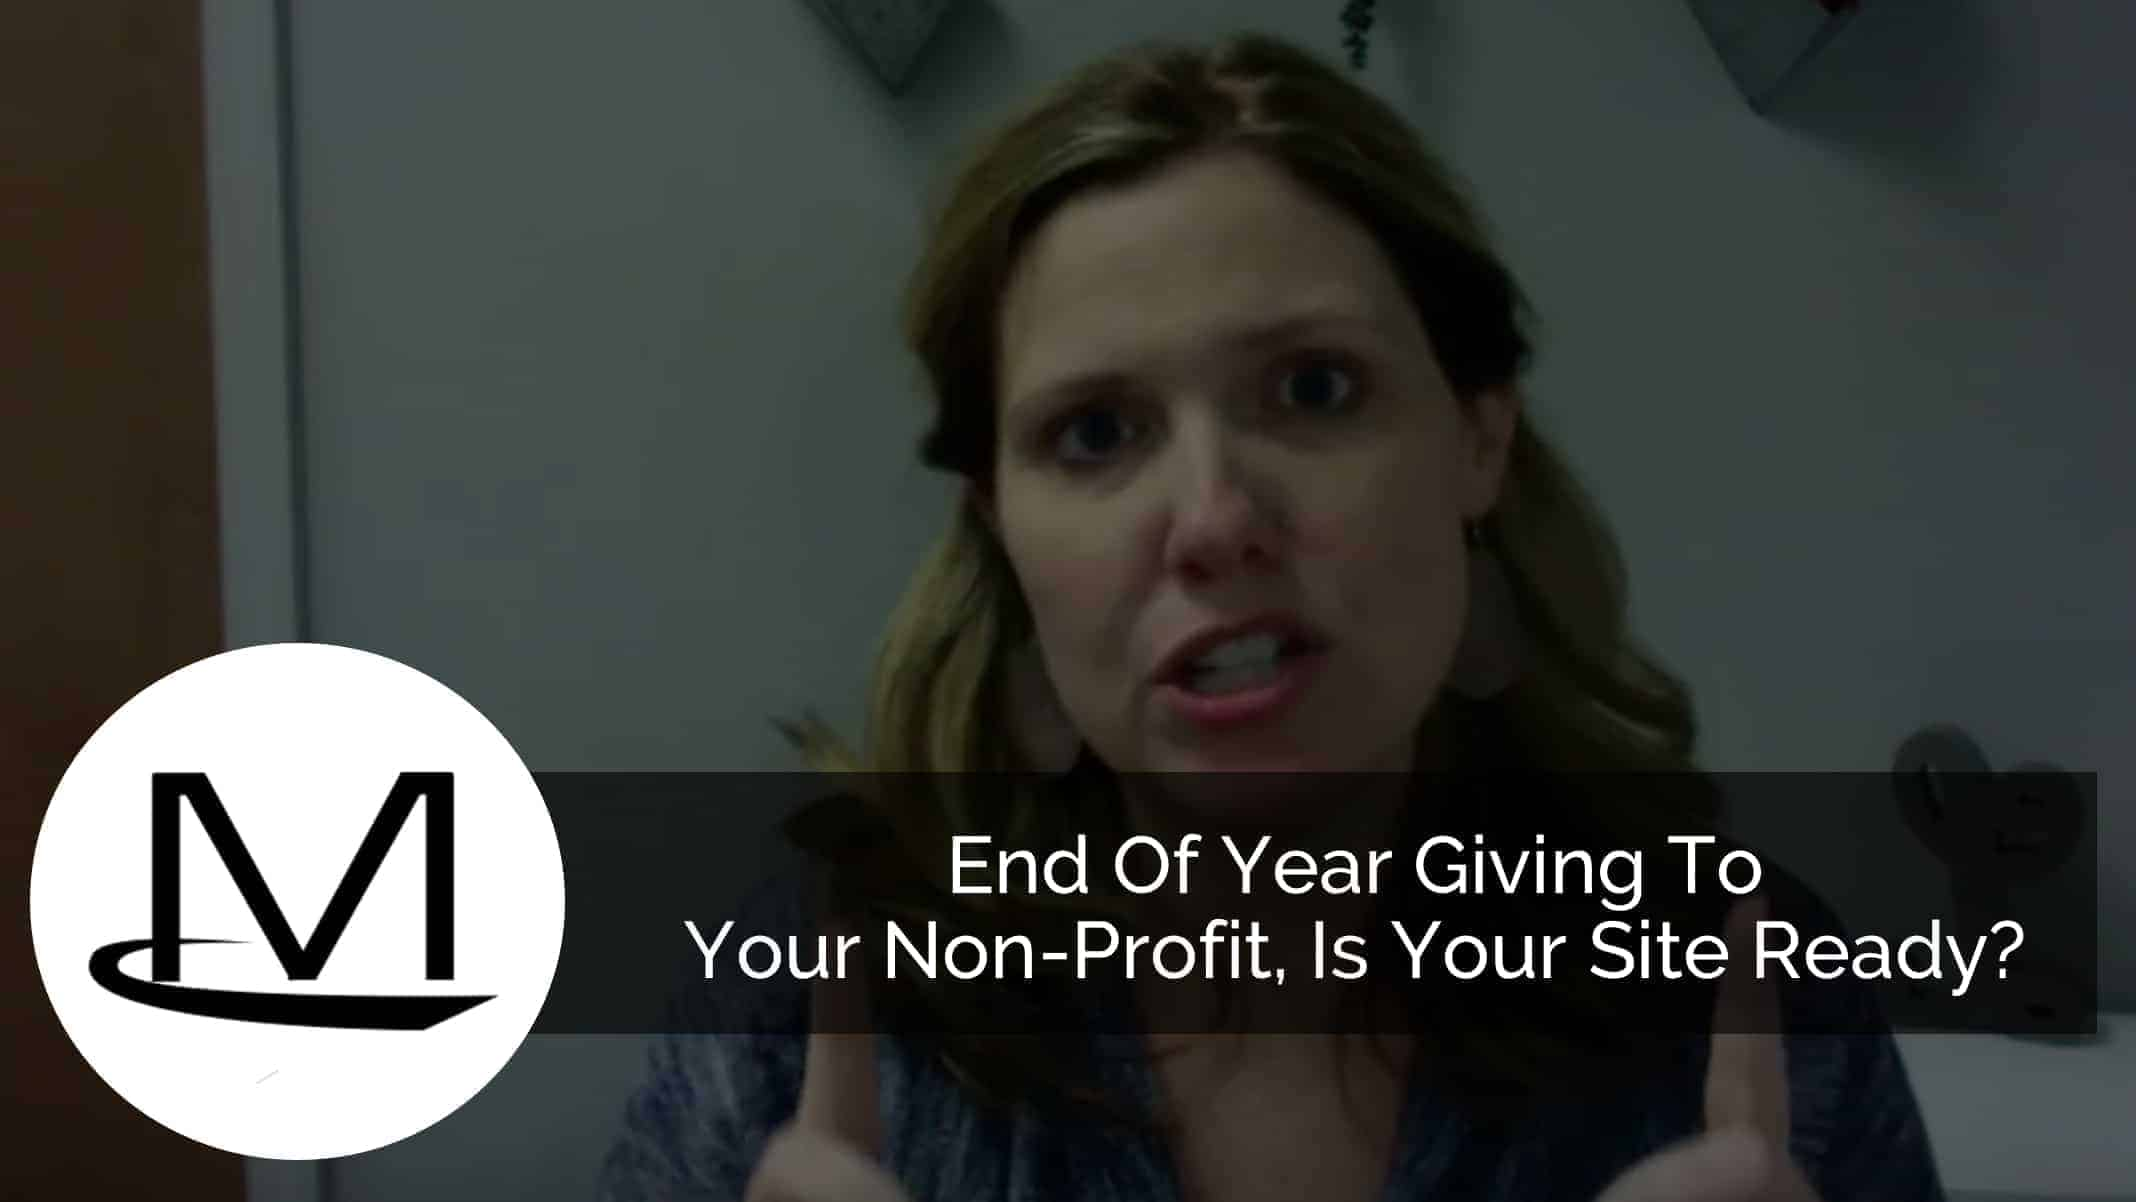 Non-Profit end of year giving